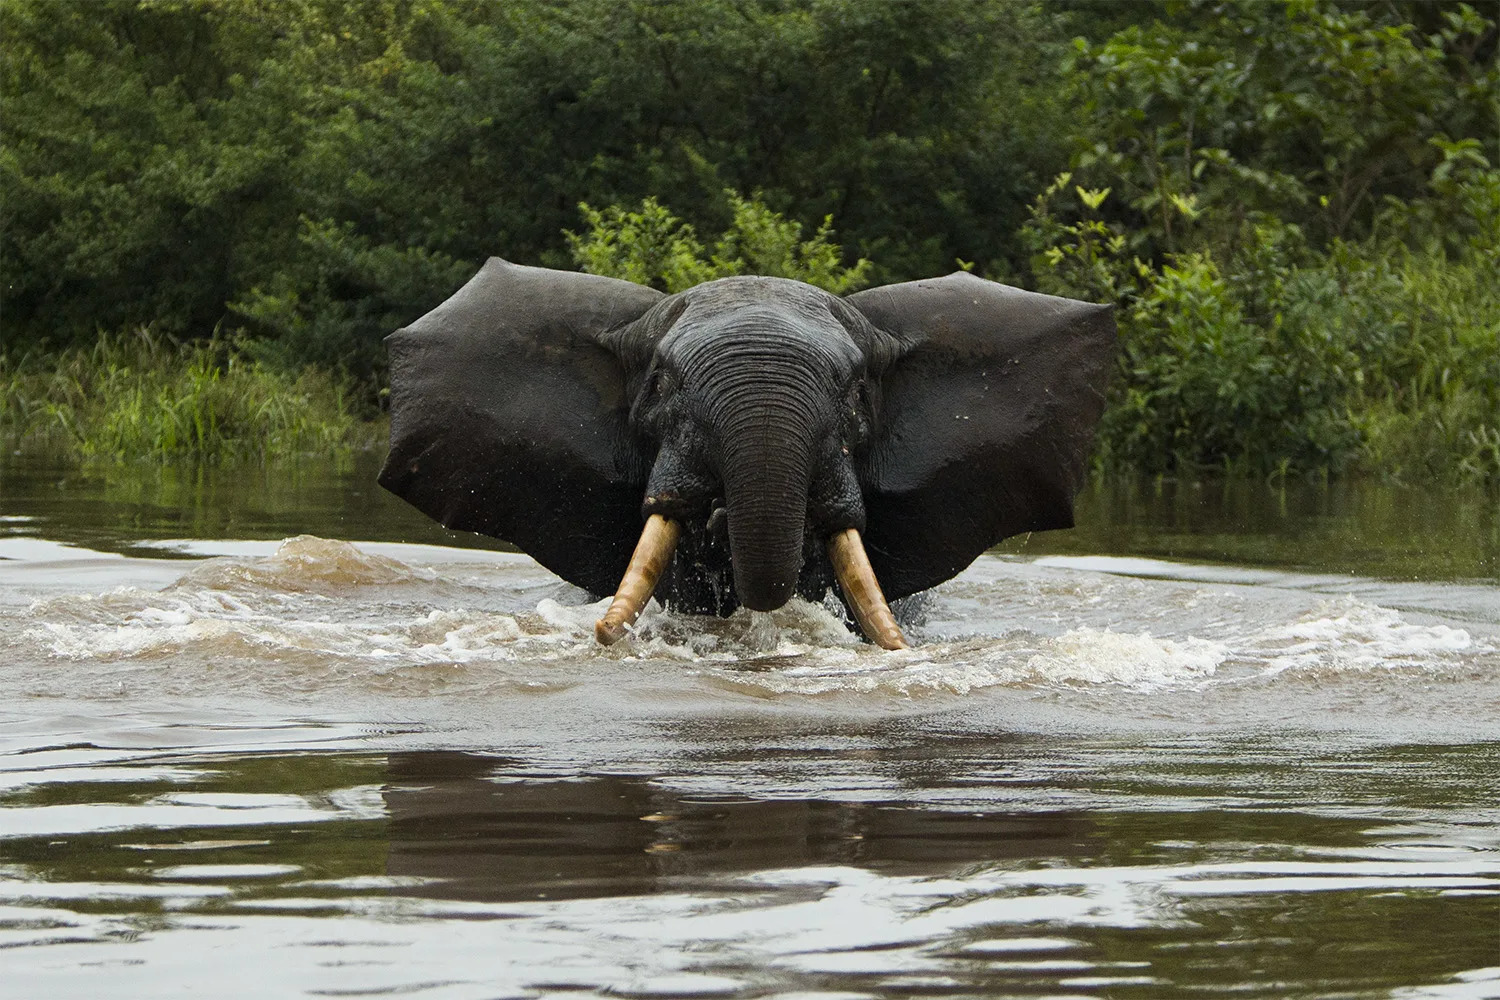 Elephant and river frontal